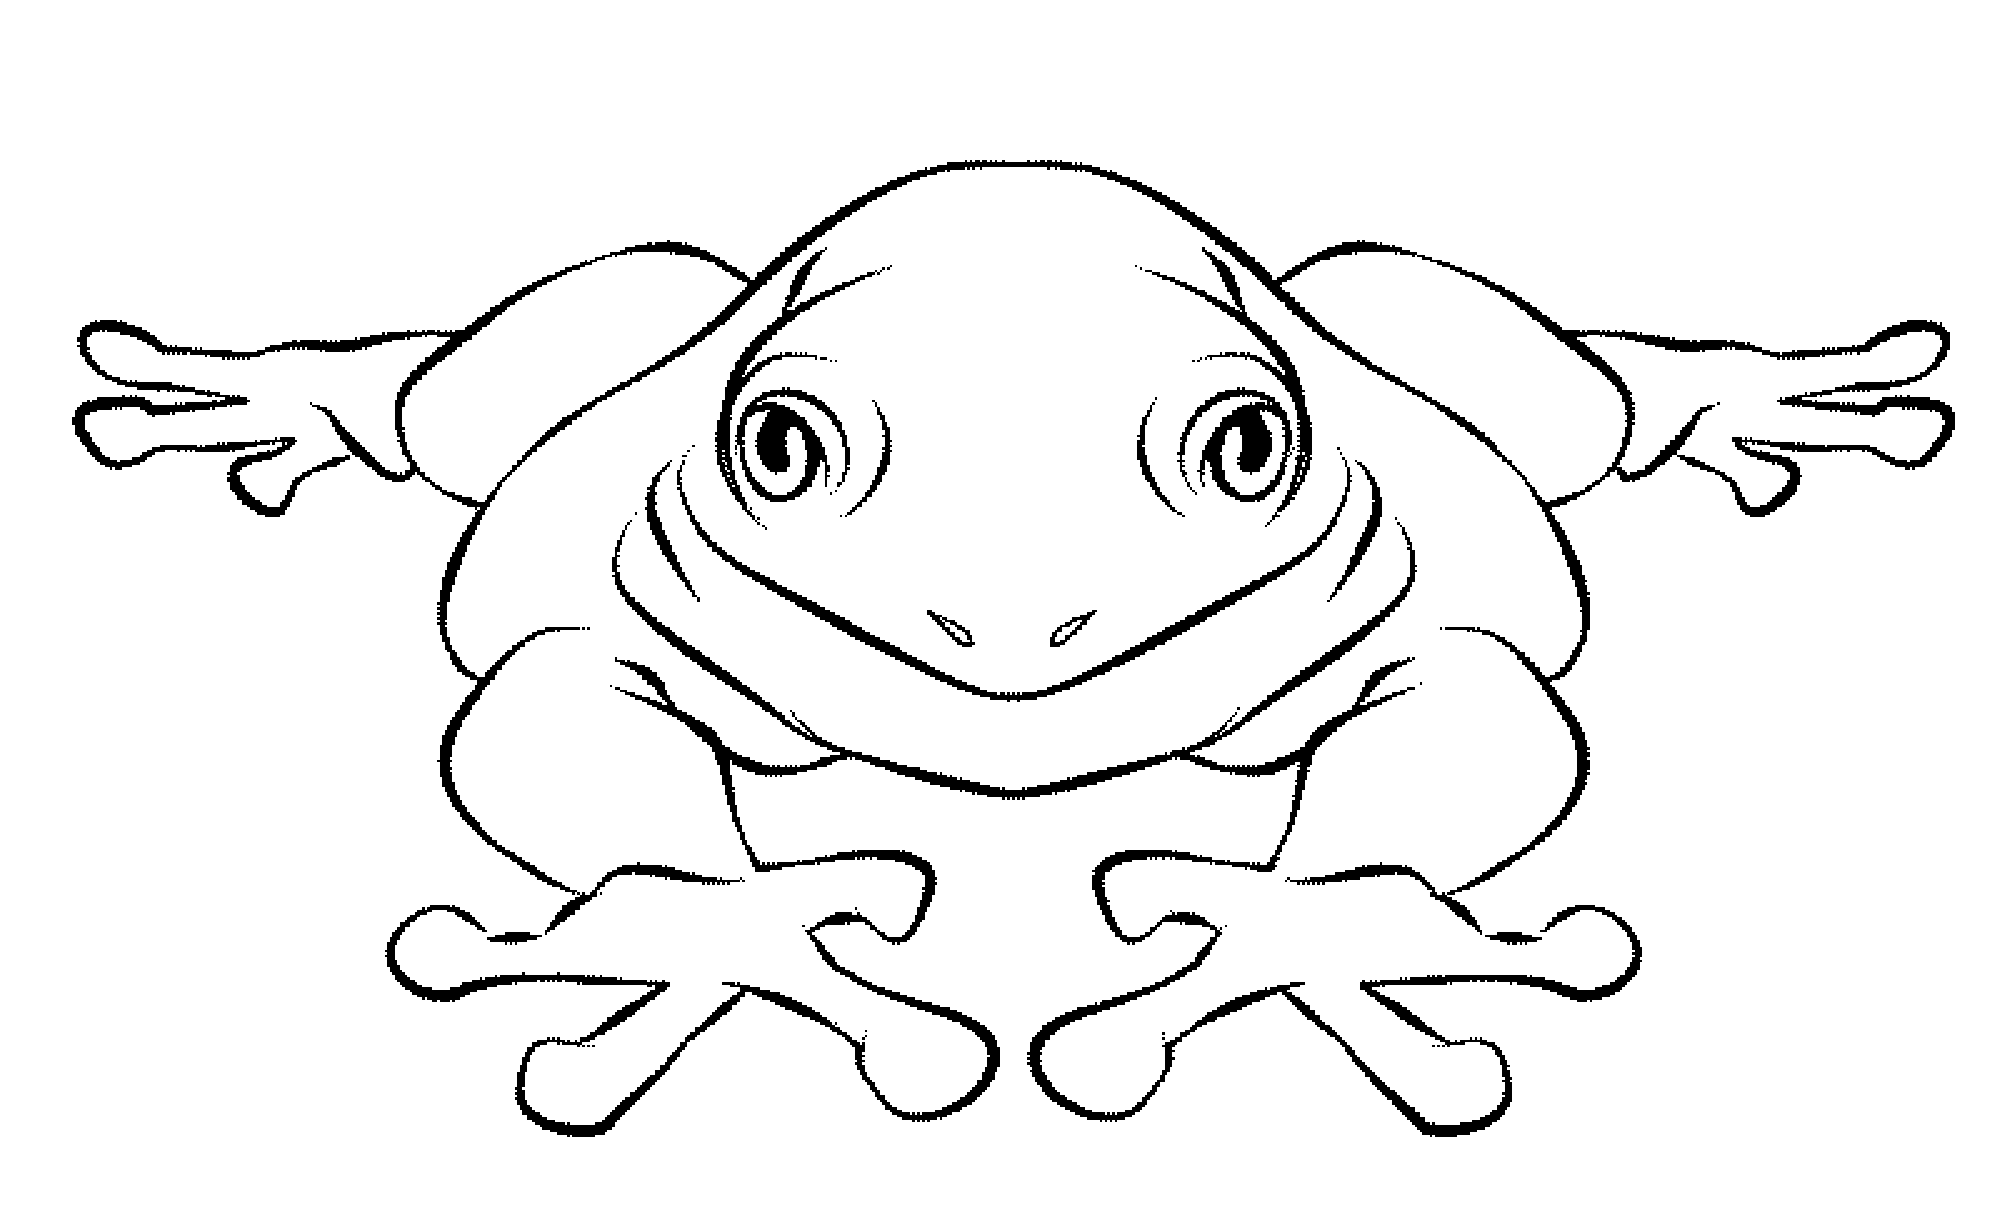 jumping frog coloring pages - Jumping Frog Coloring Page